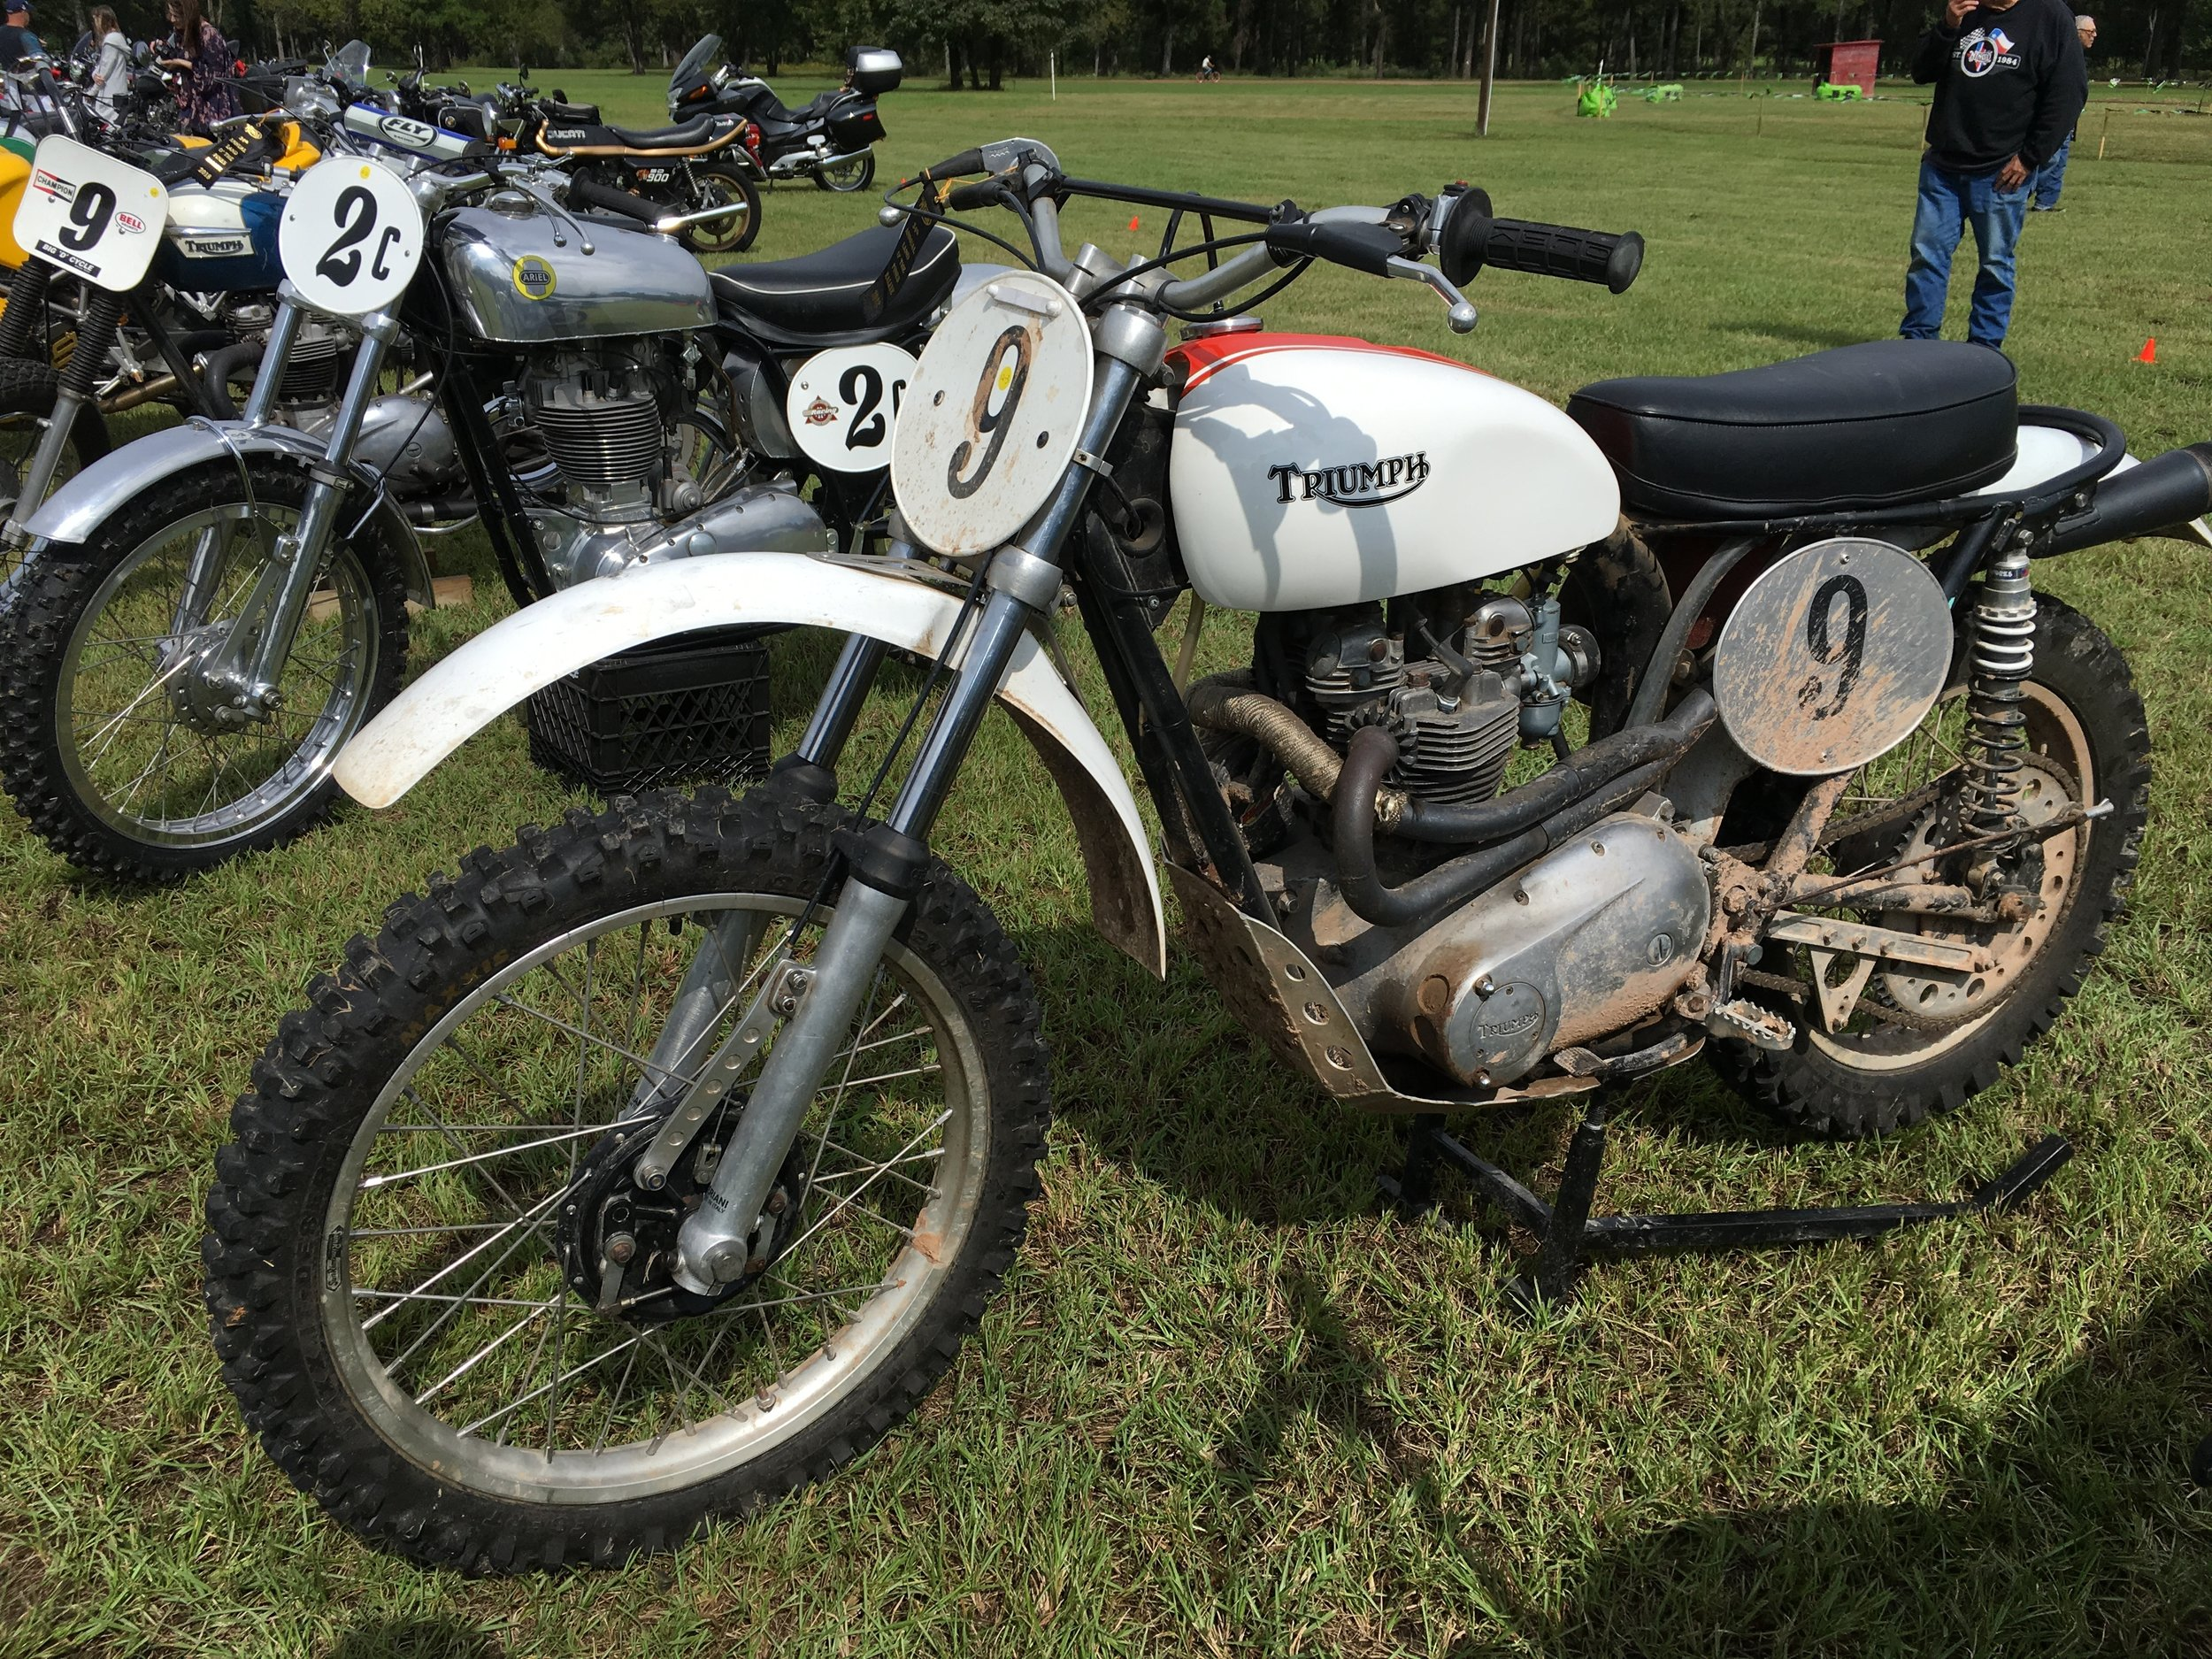 The Jason Lee Triumph TR6C took second in the competition class. Behind is the Ariel/BSA racer that took the top award. I finally had a chance to give this bike a ride with all the dirt and mud we had, and was not disappointed.